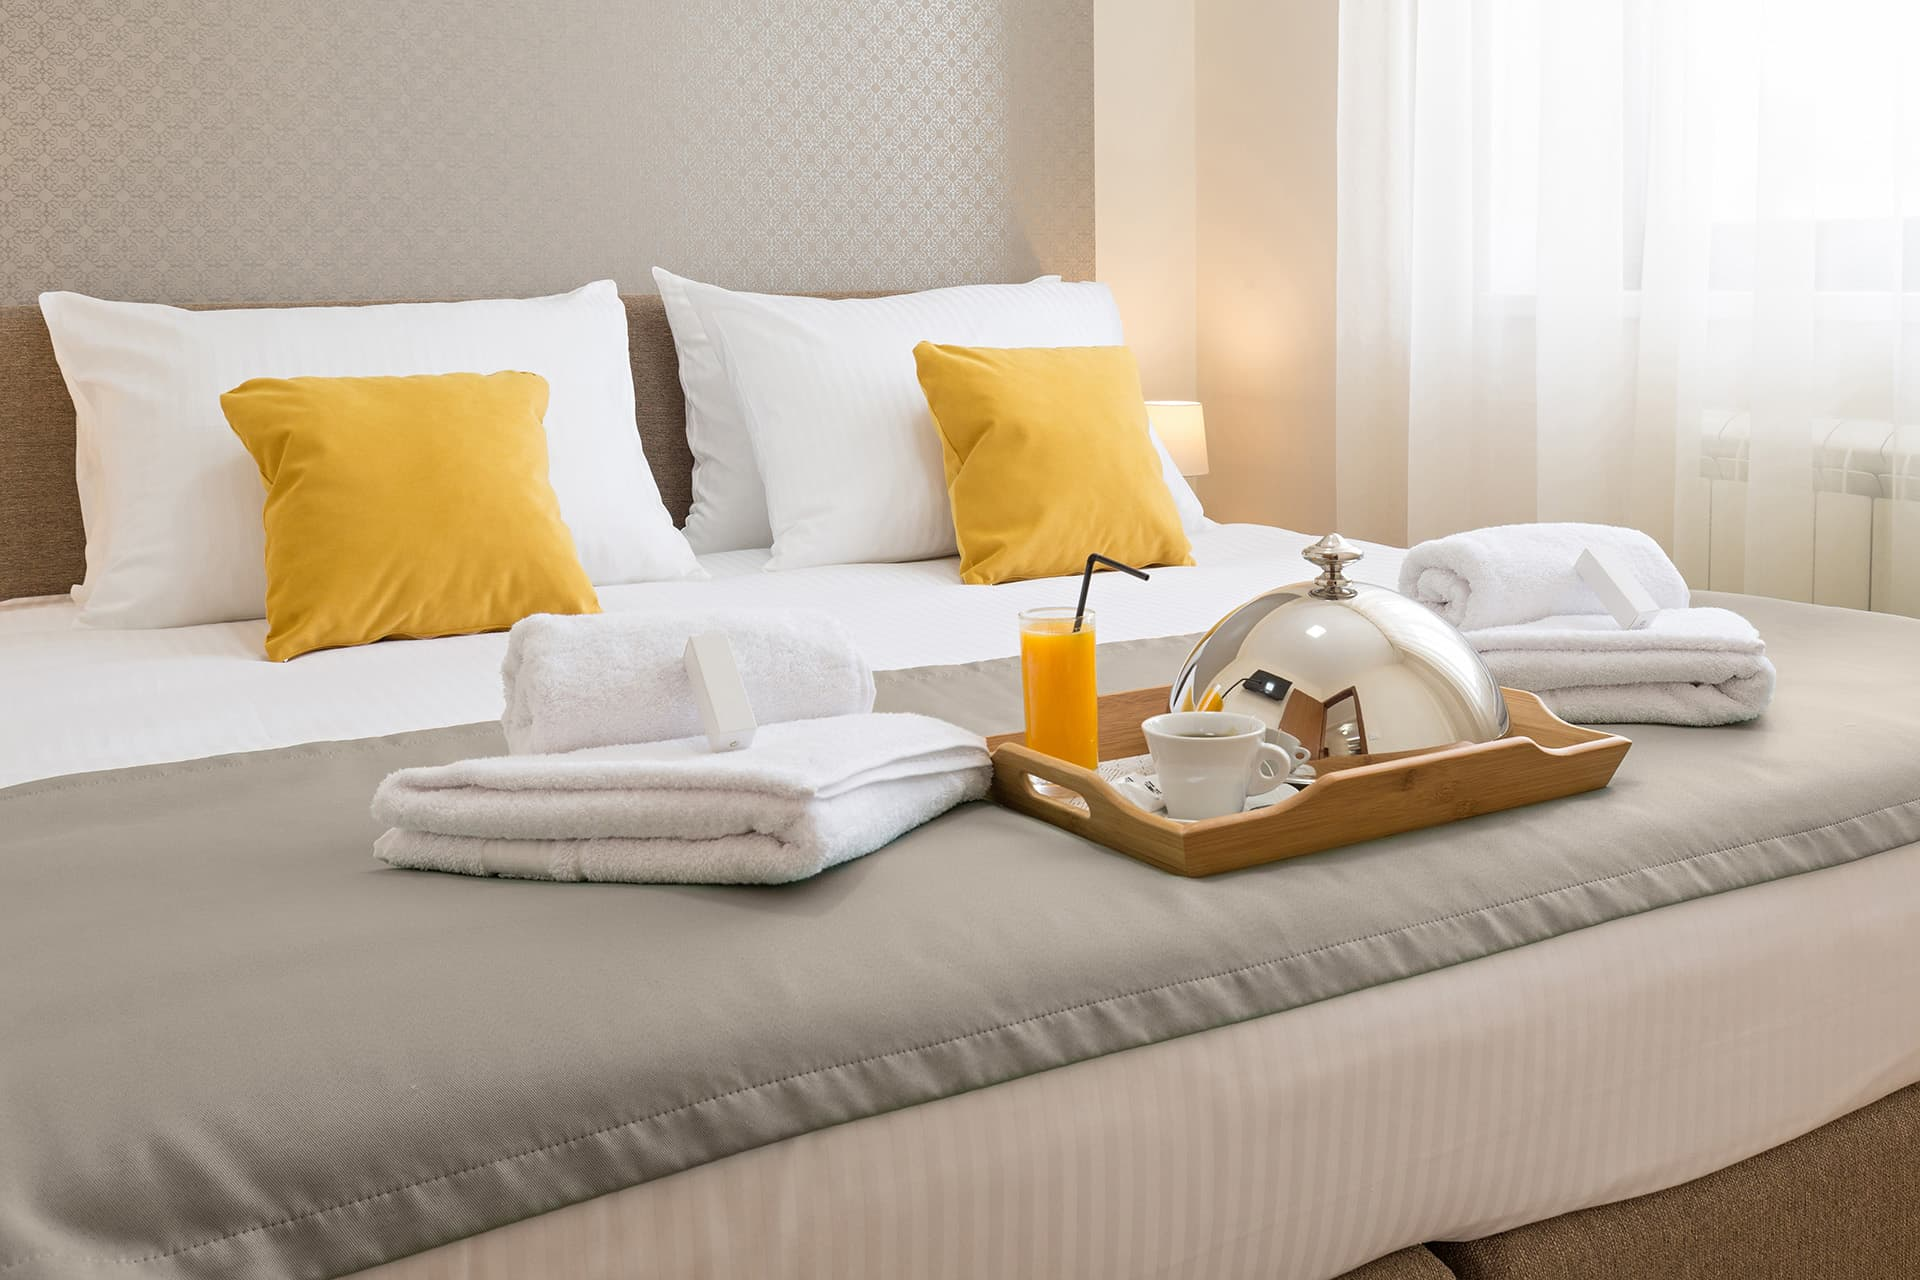 Bed with towels and room service tray at a hotel with hotel insurance